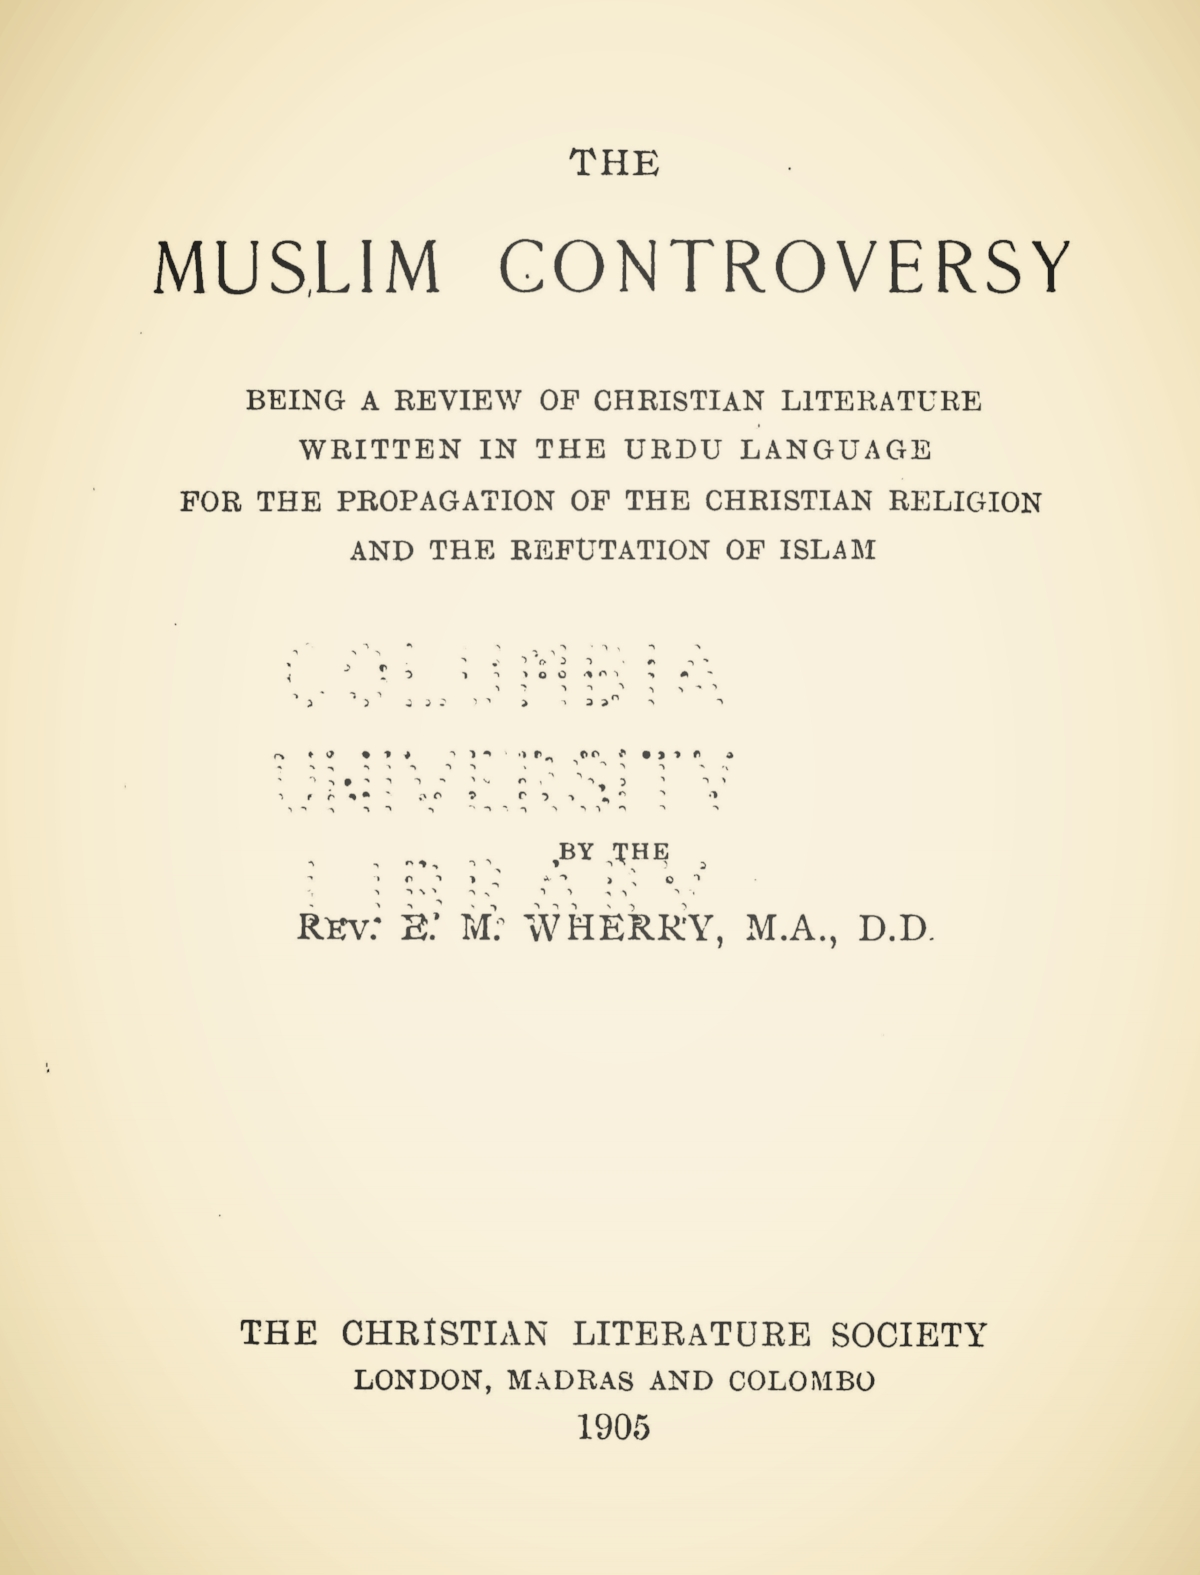 Wherry, Elwood Morris, The Muslim Controversy Title Page.jpg